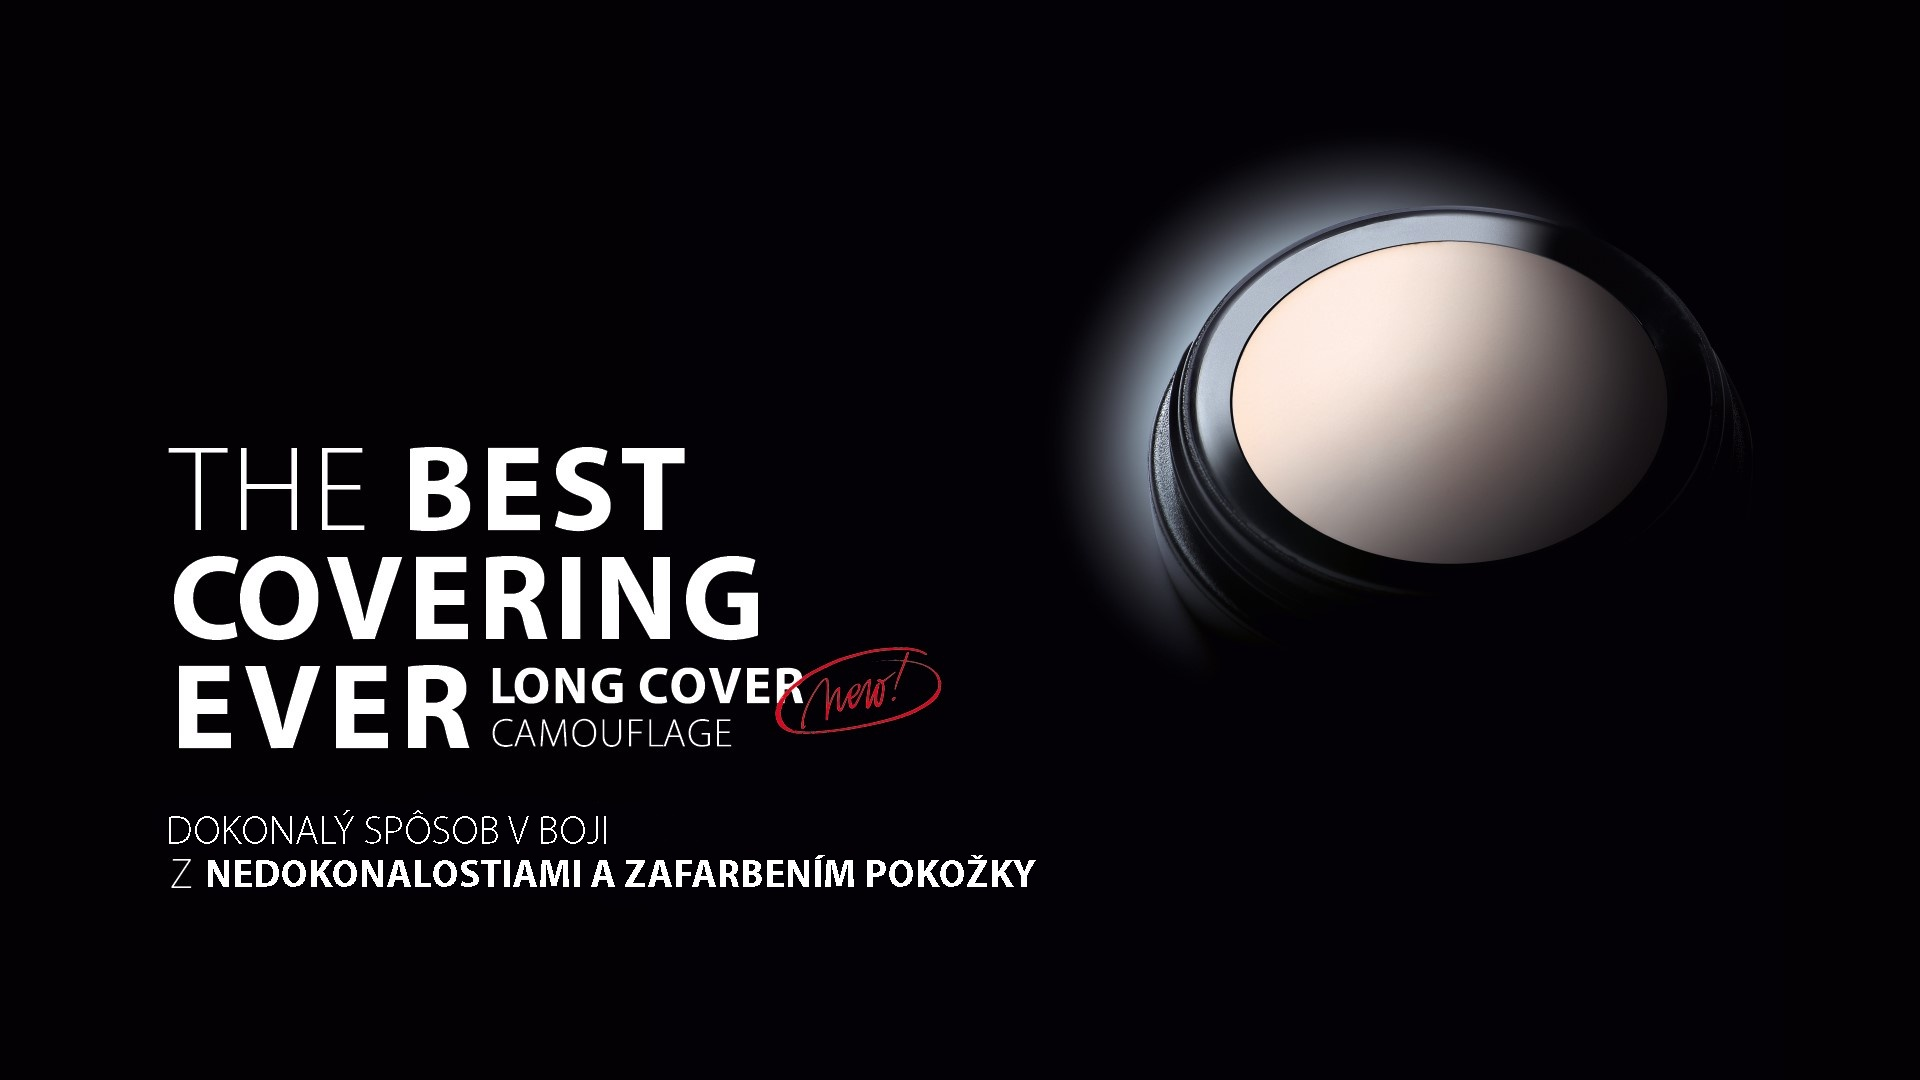 paese-long-cover-camouflage-banner-1920x1080